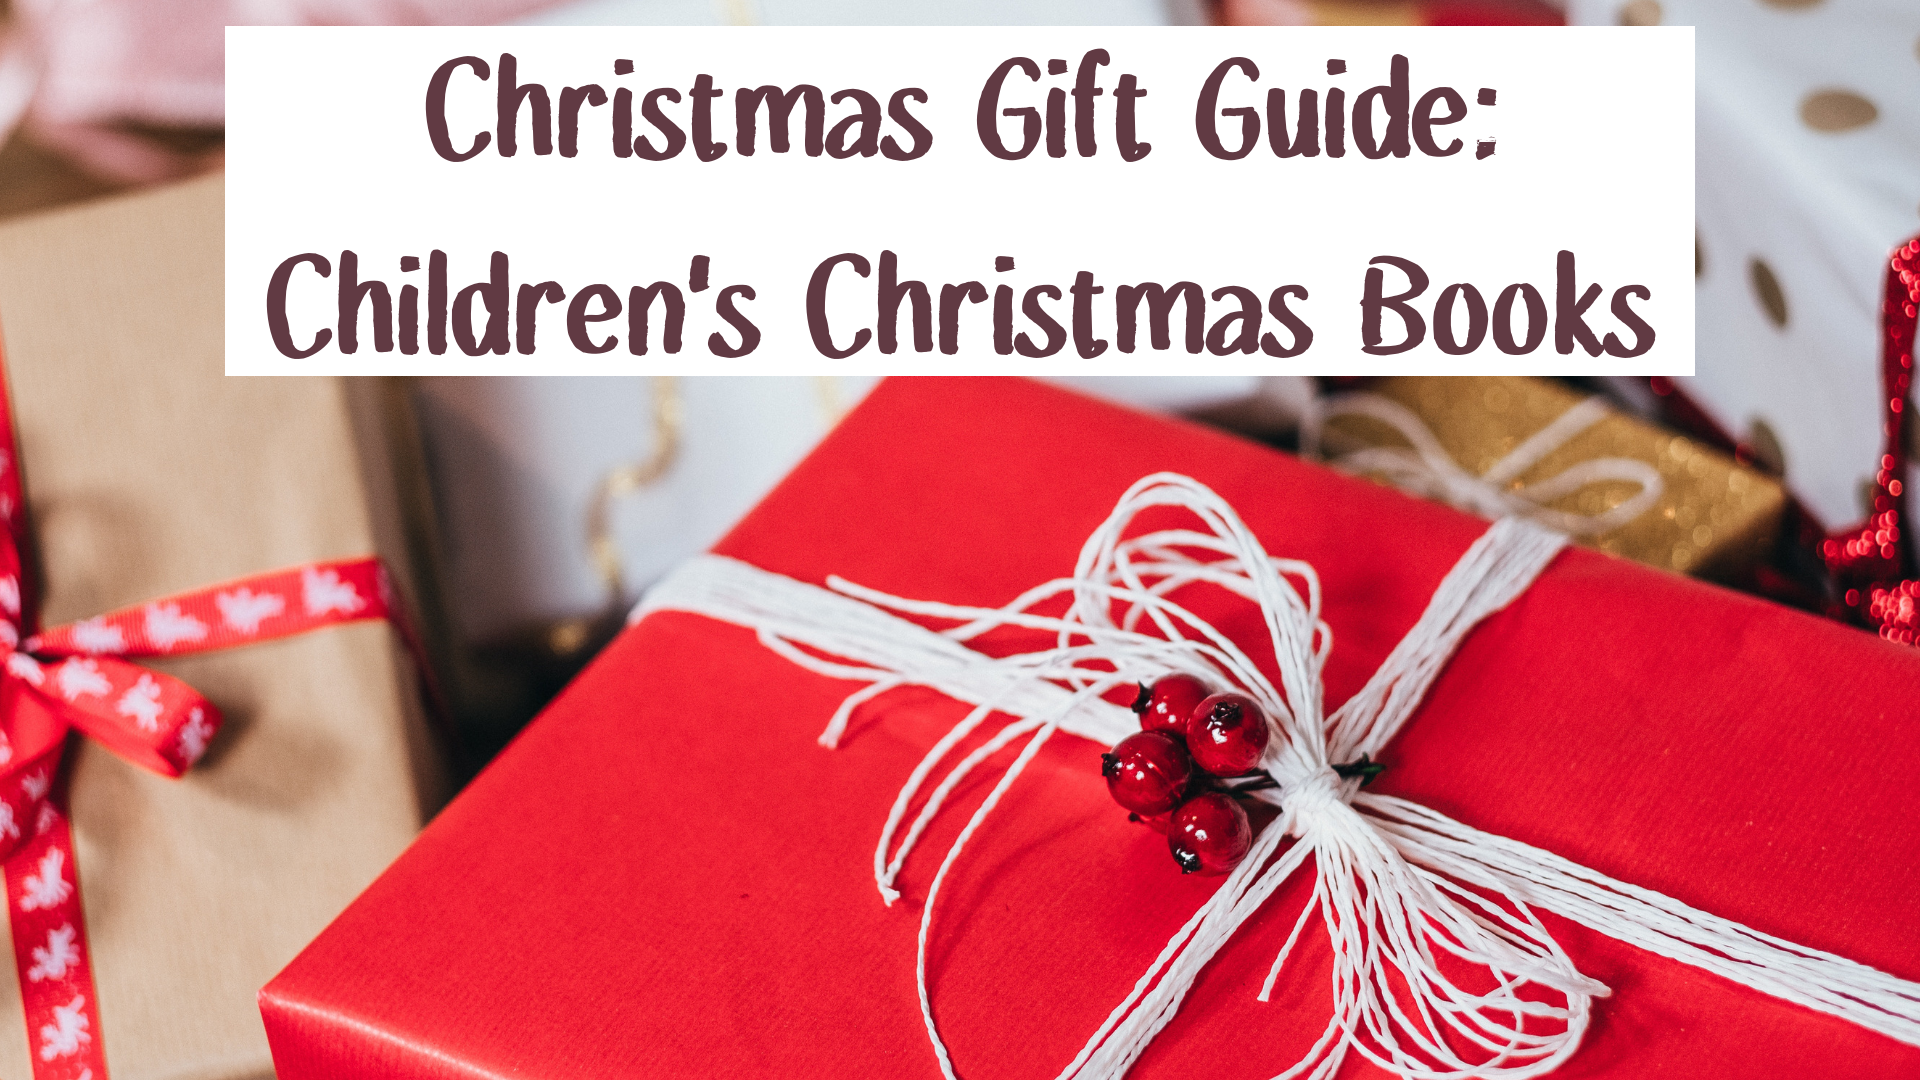 childrens christmas books gift guide